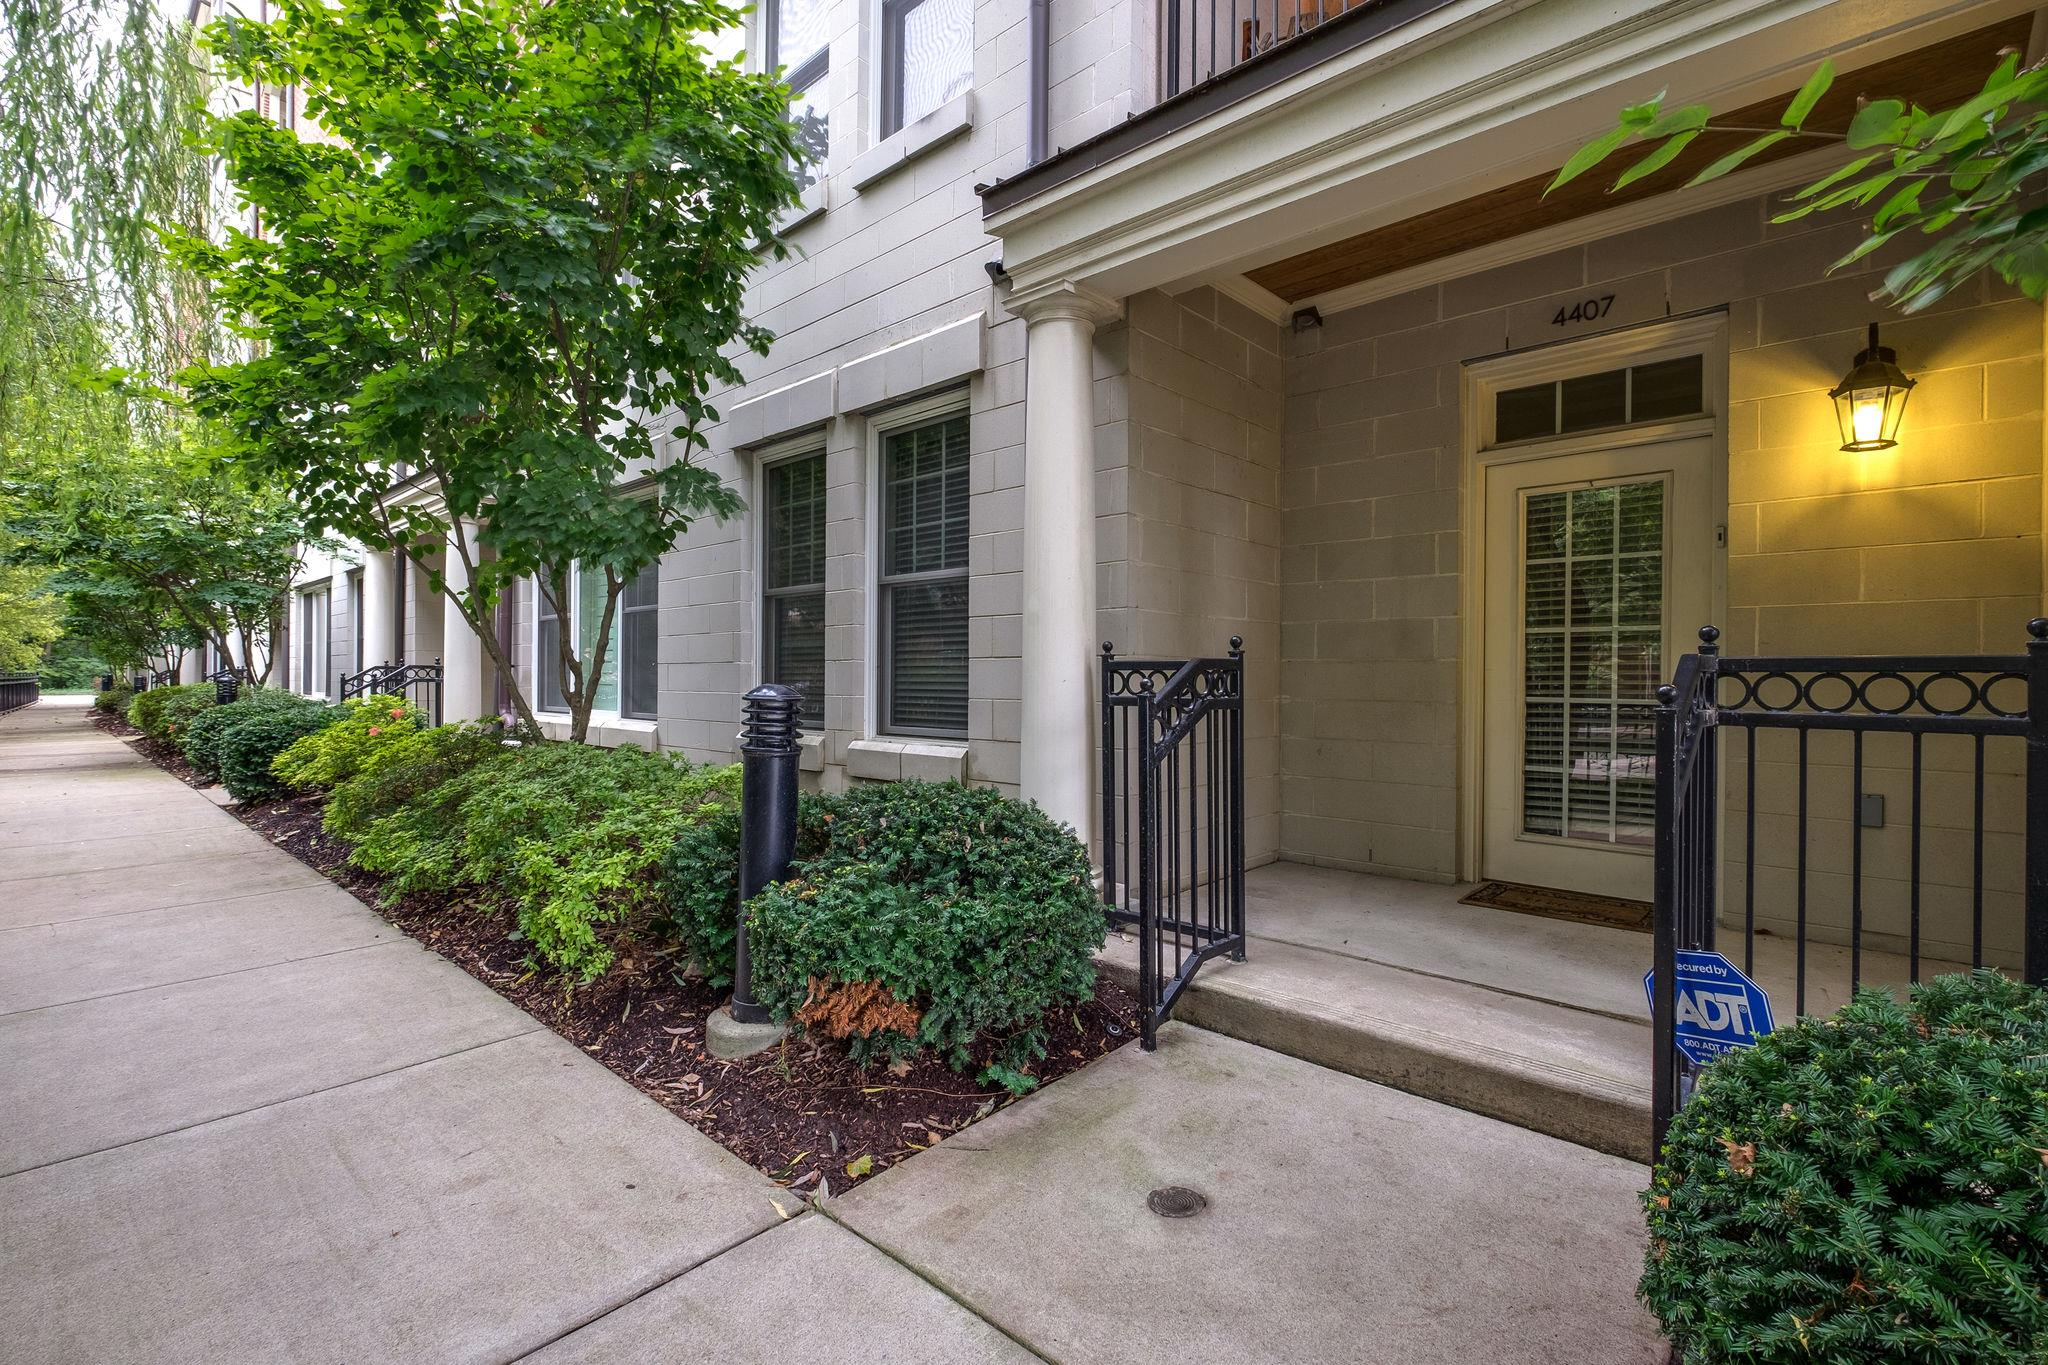 4407 Ridgefield Way, Nashville, TN 37205 - Nashville, TN real estate listing